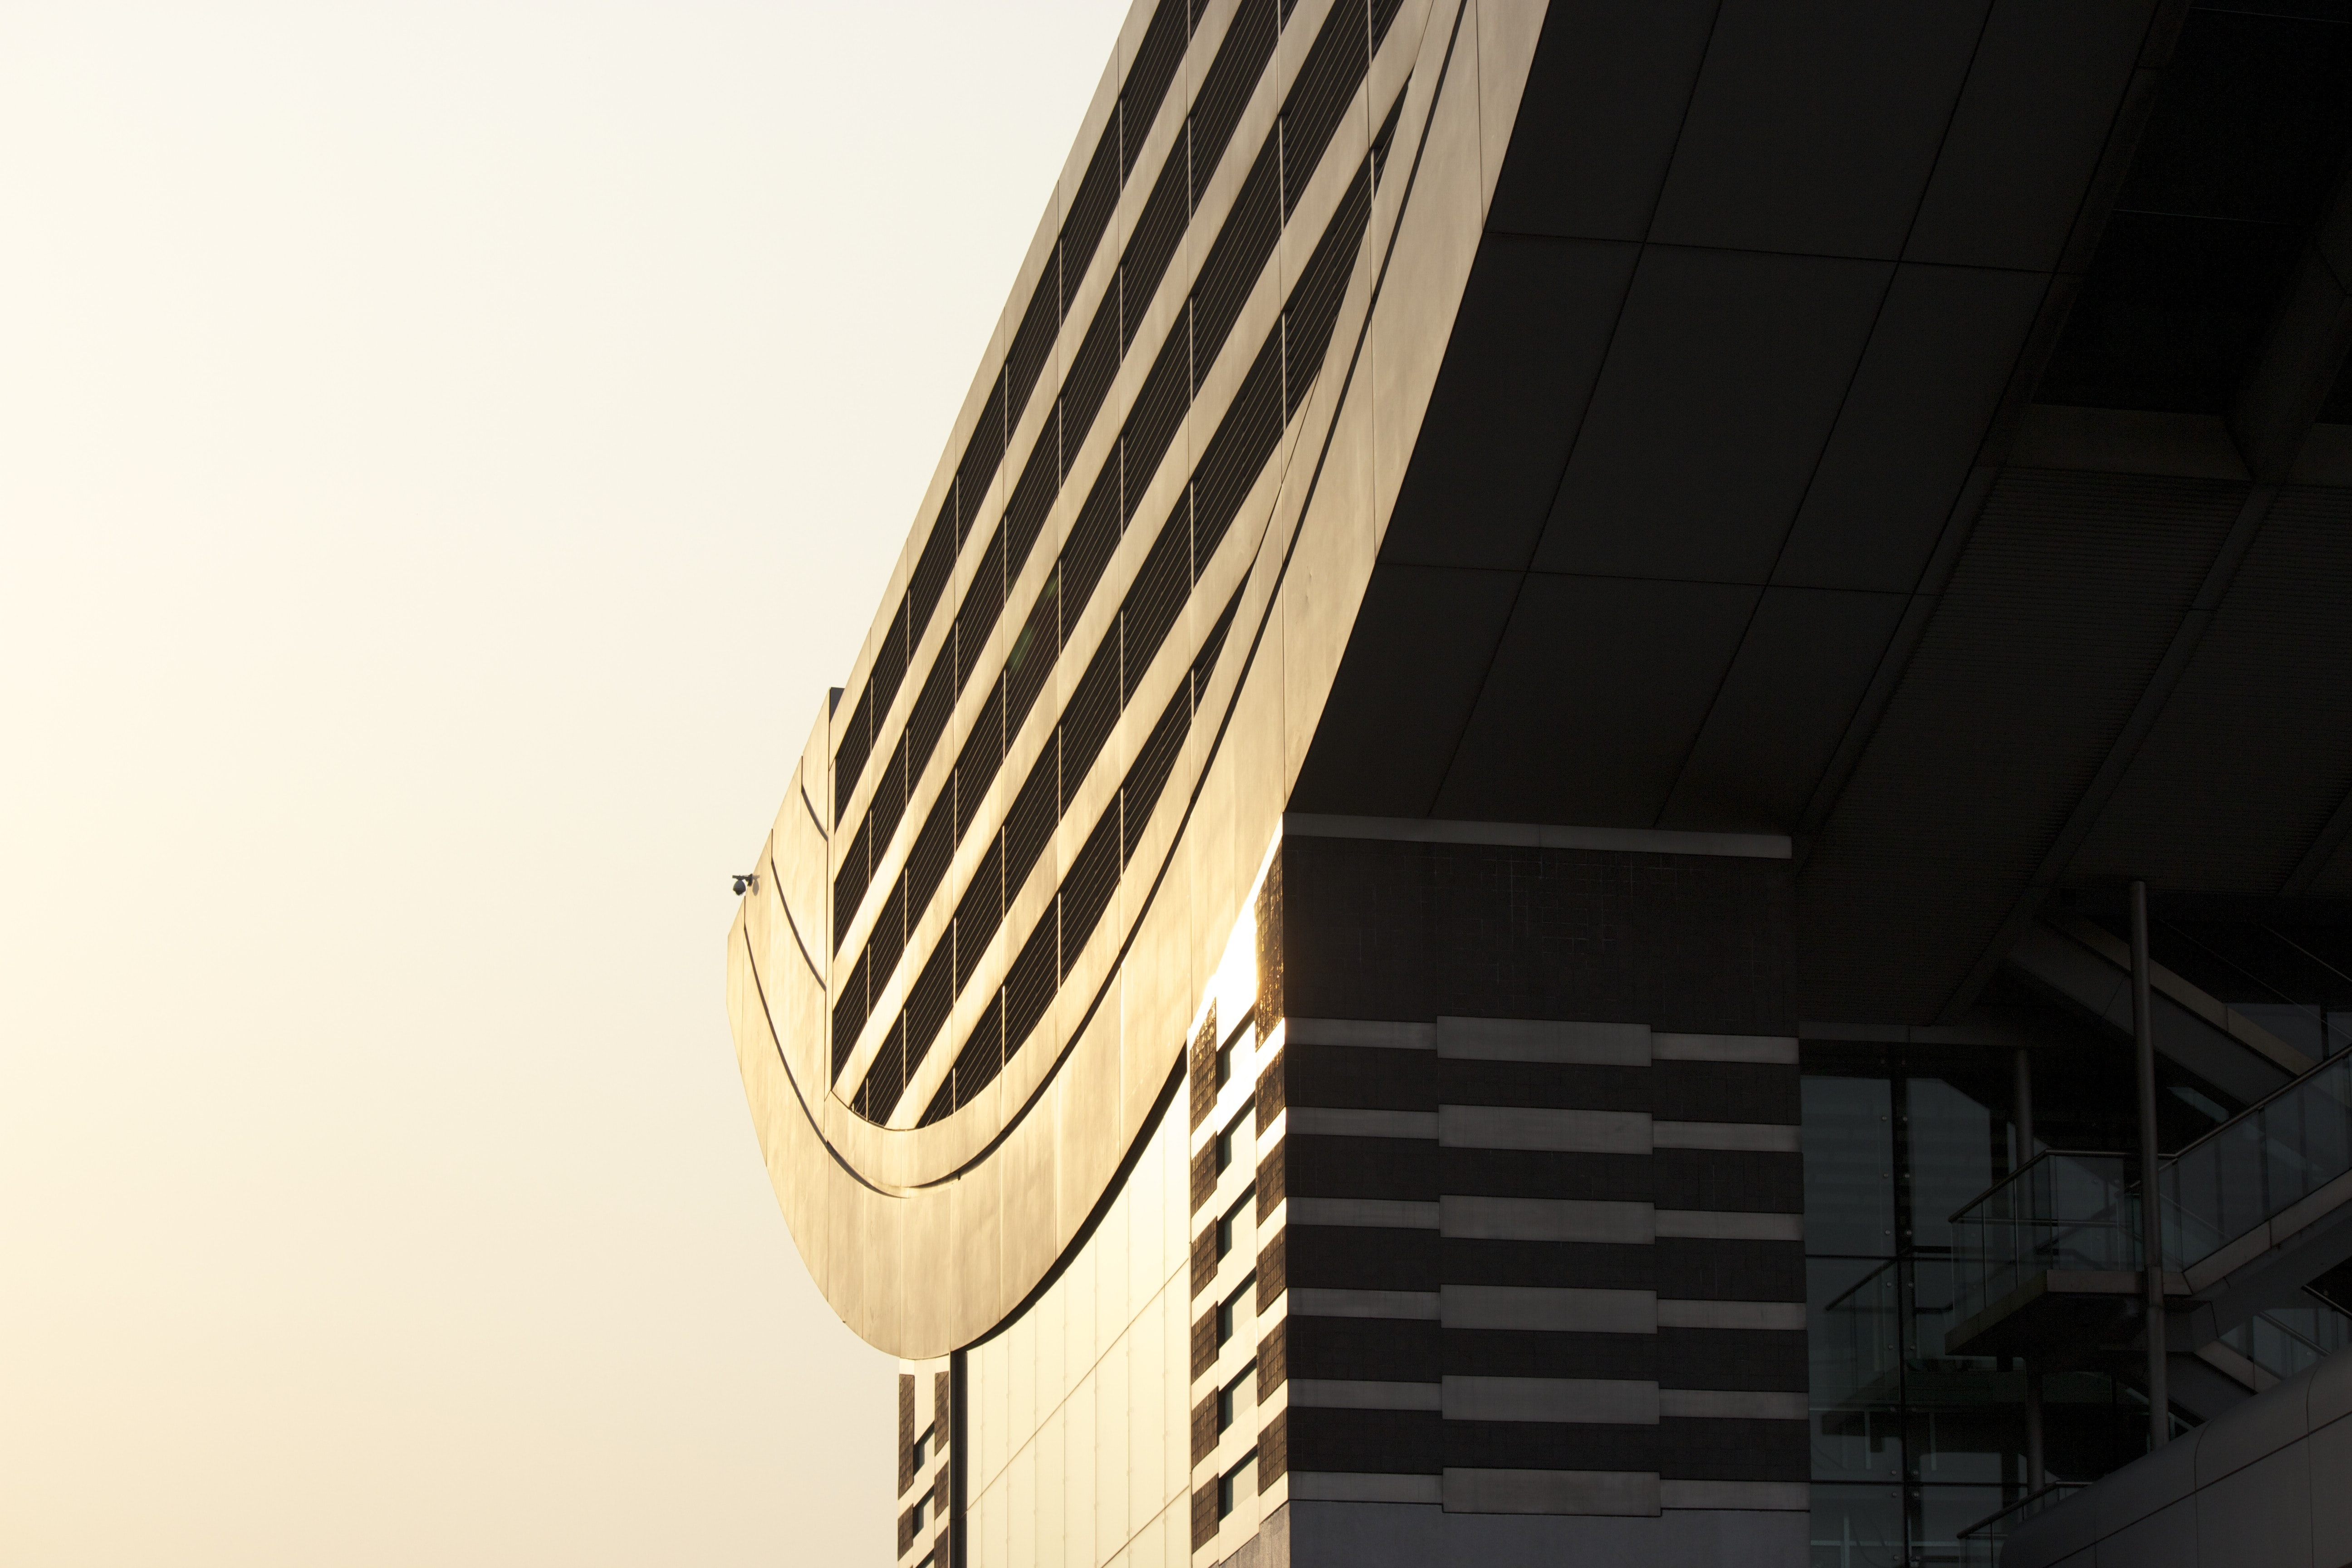 The facade and roof of a modern building in bright sunlight